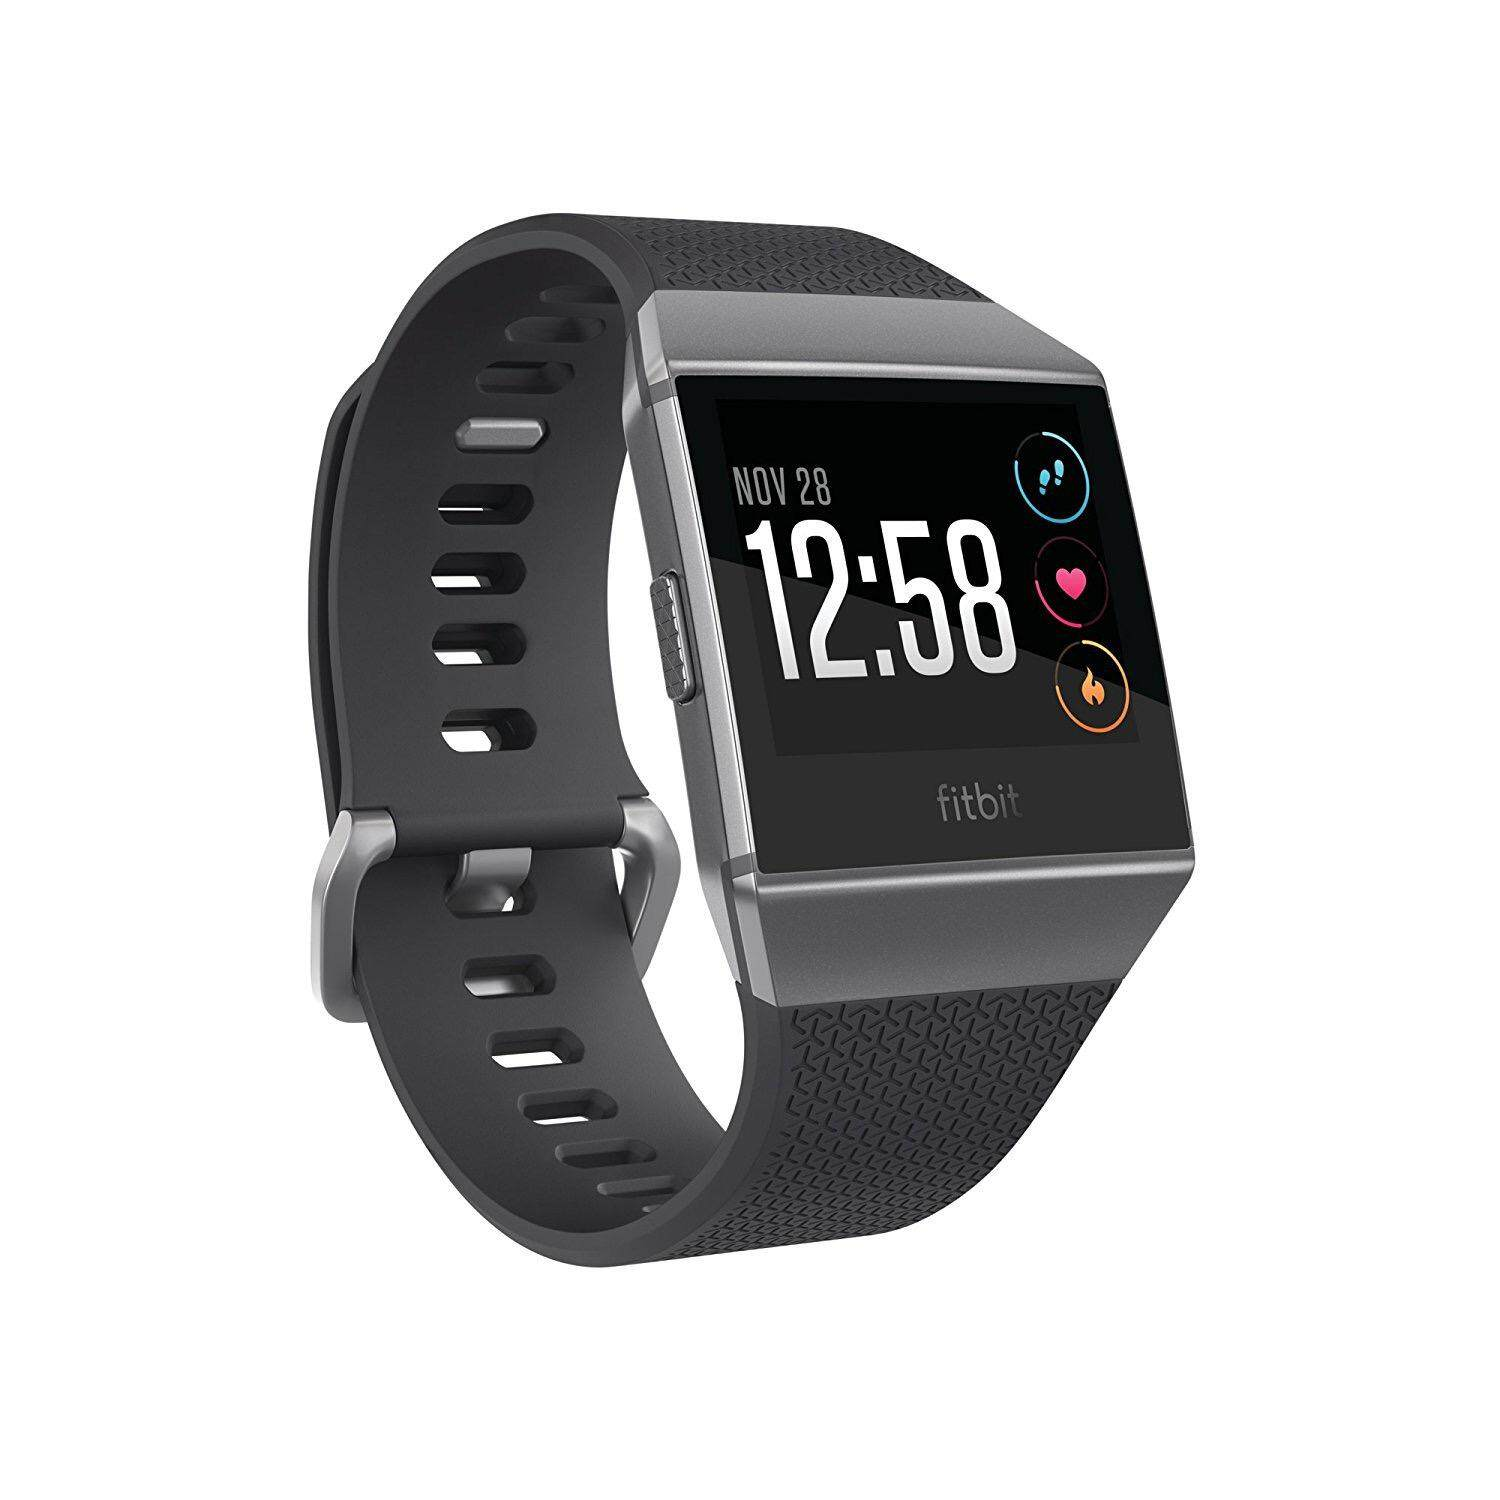 Branded Fitbit Products With Best Online Price In Malaysia Smartwatch M2 Smartband Heart Mirip Xiaomi Mi Band Ionic Charcoal Smoke Gray One Size S L Bands